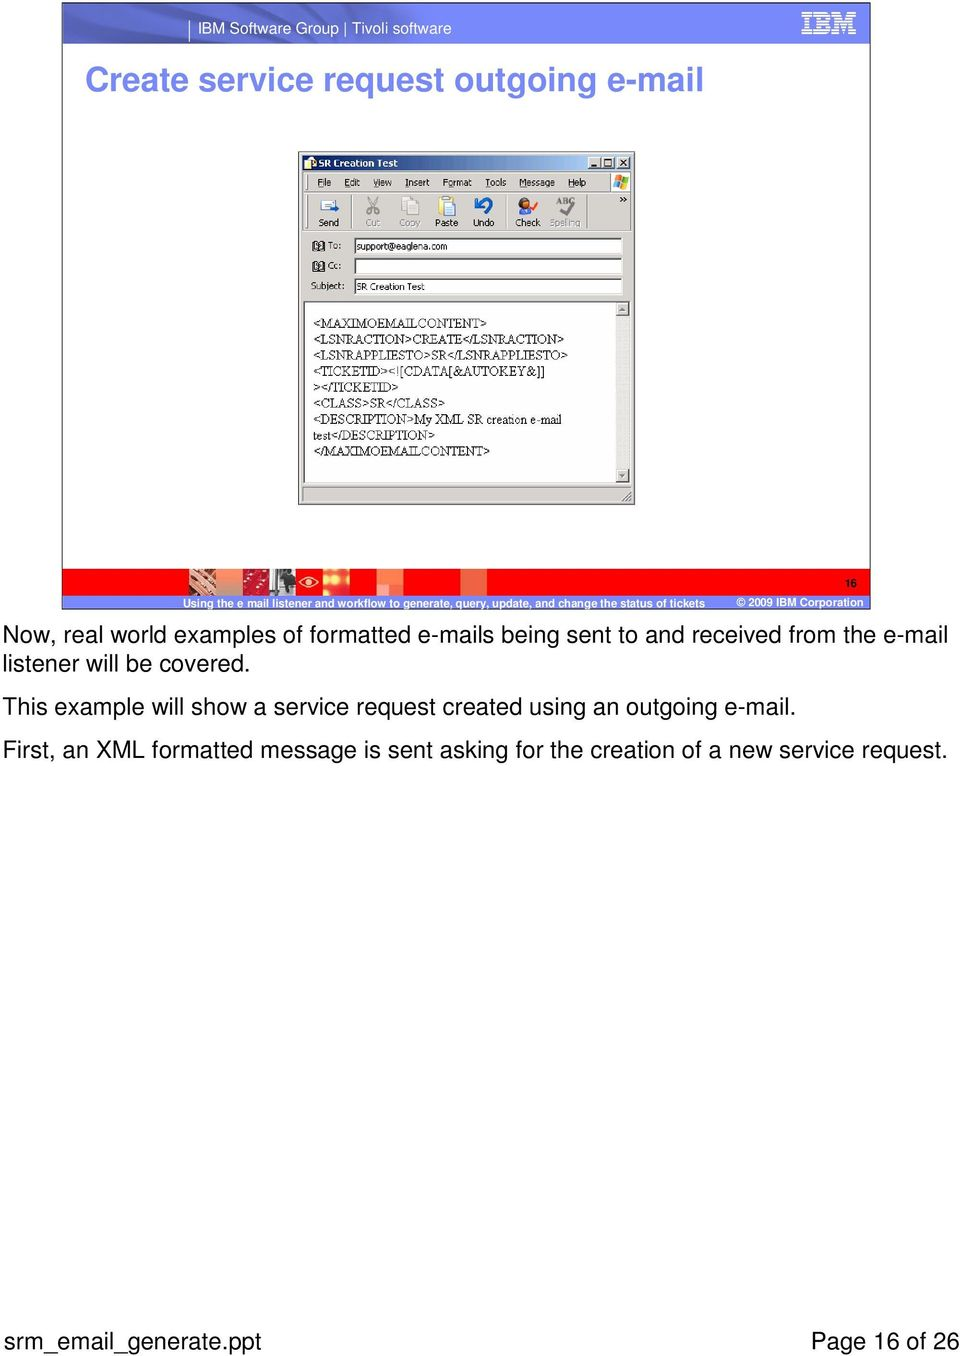 This example will show a service request created using an outgoing e-mail.